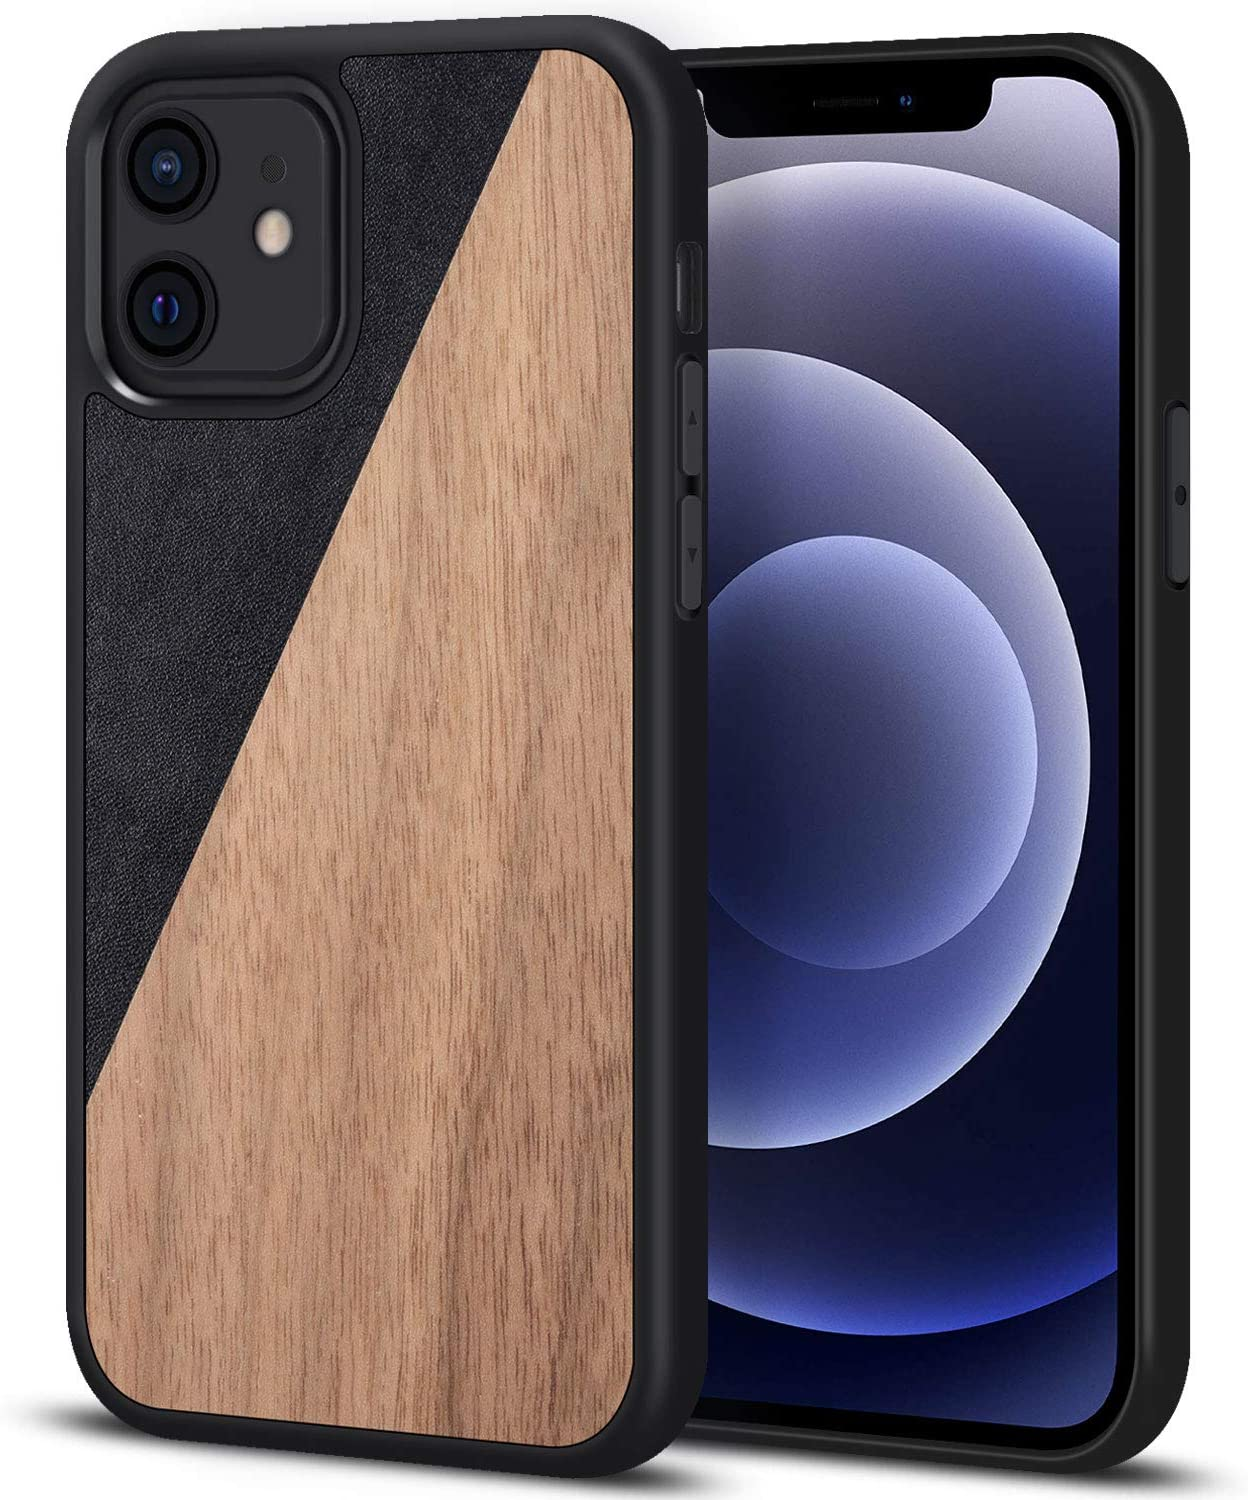 JUBECO Wood iPhone 12 Mini Case, Natural Slim Eleghant Wooden Protective Cover with Rubber Bumper for iPhone 12 Mini (Walnut-Leather)